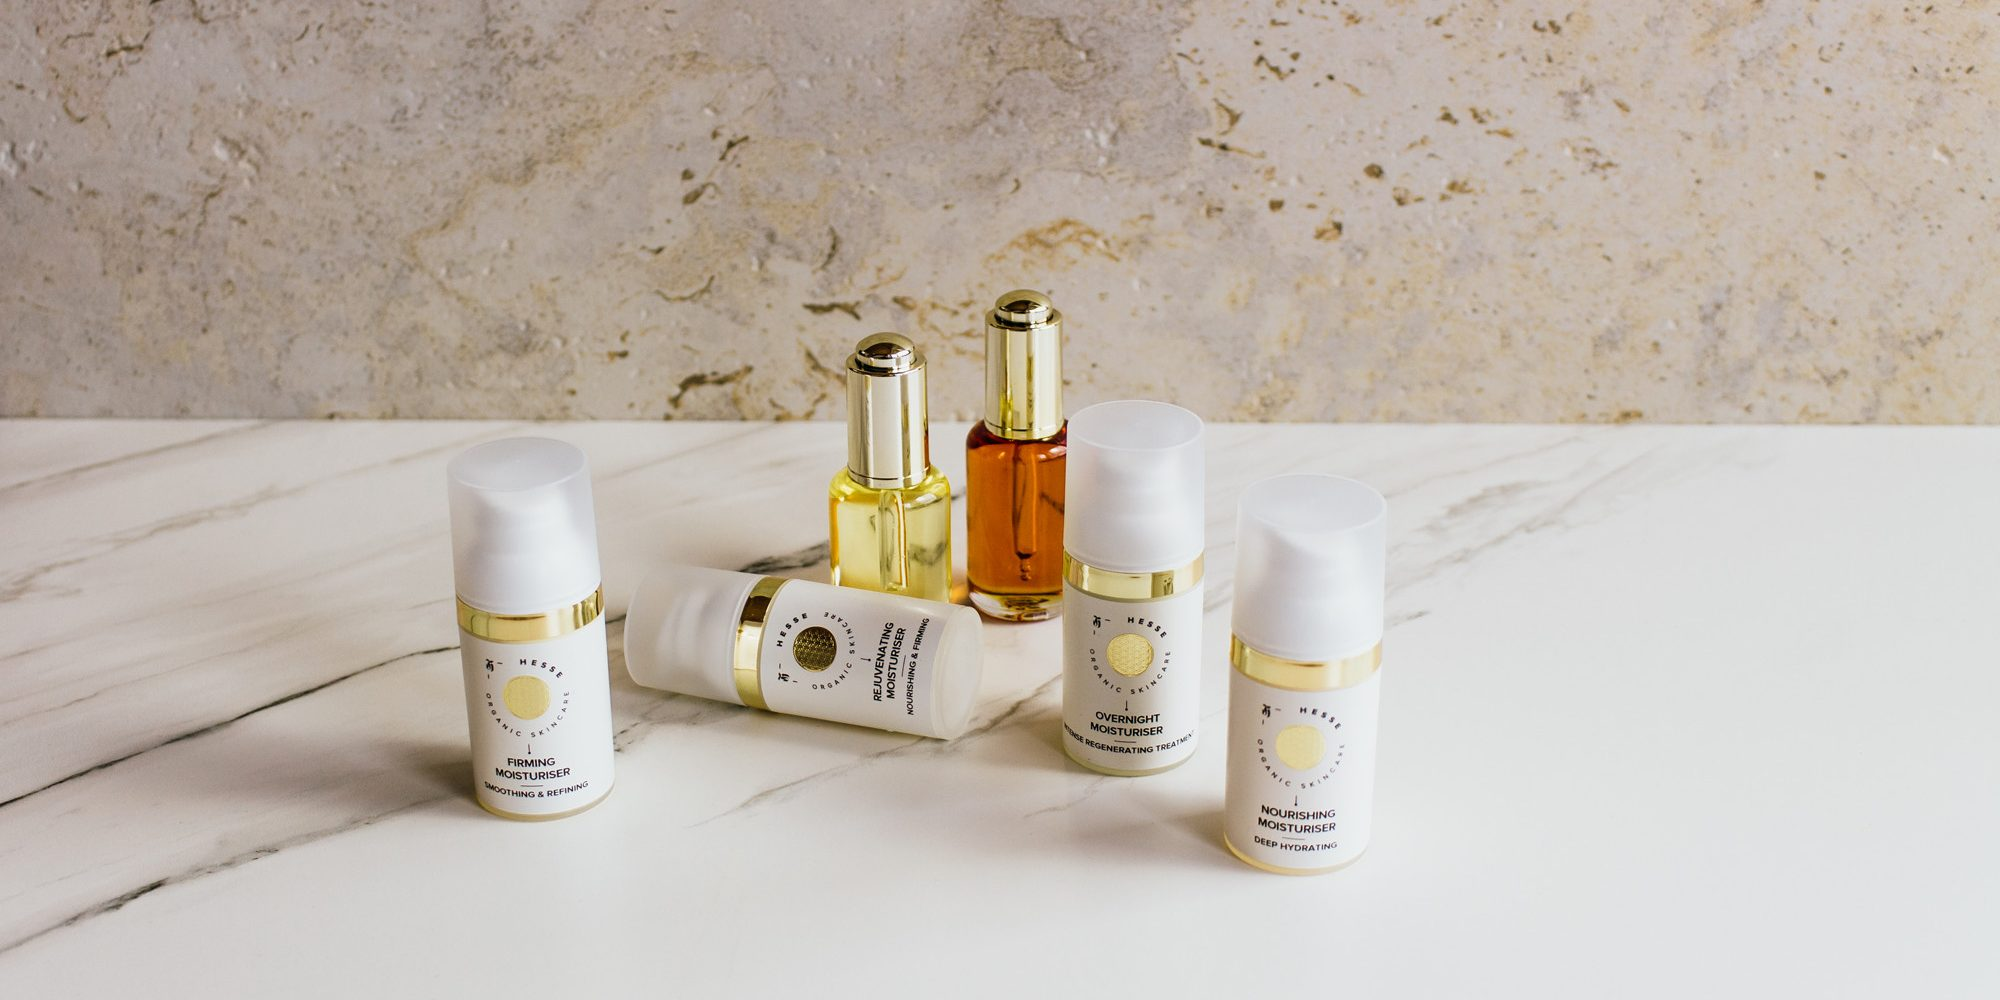 Hesse Organic Skincare: Slow Beauty als Ideal